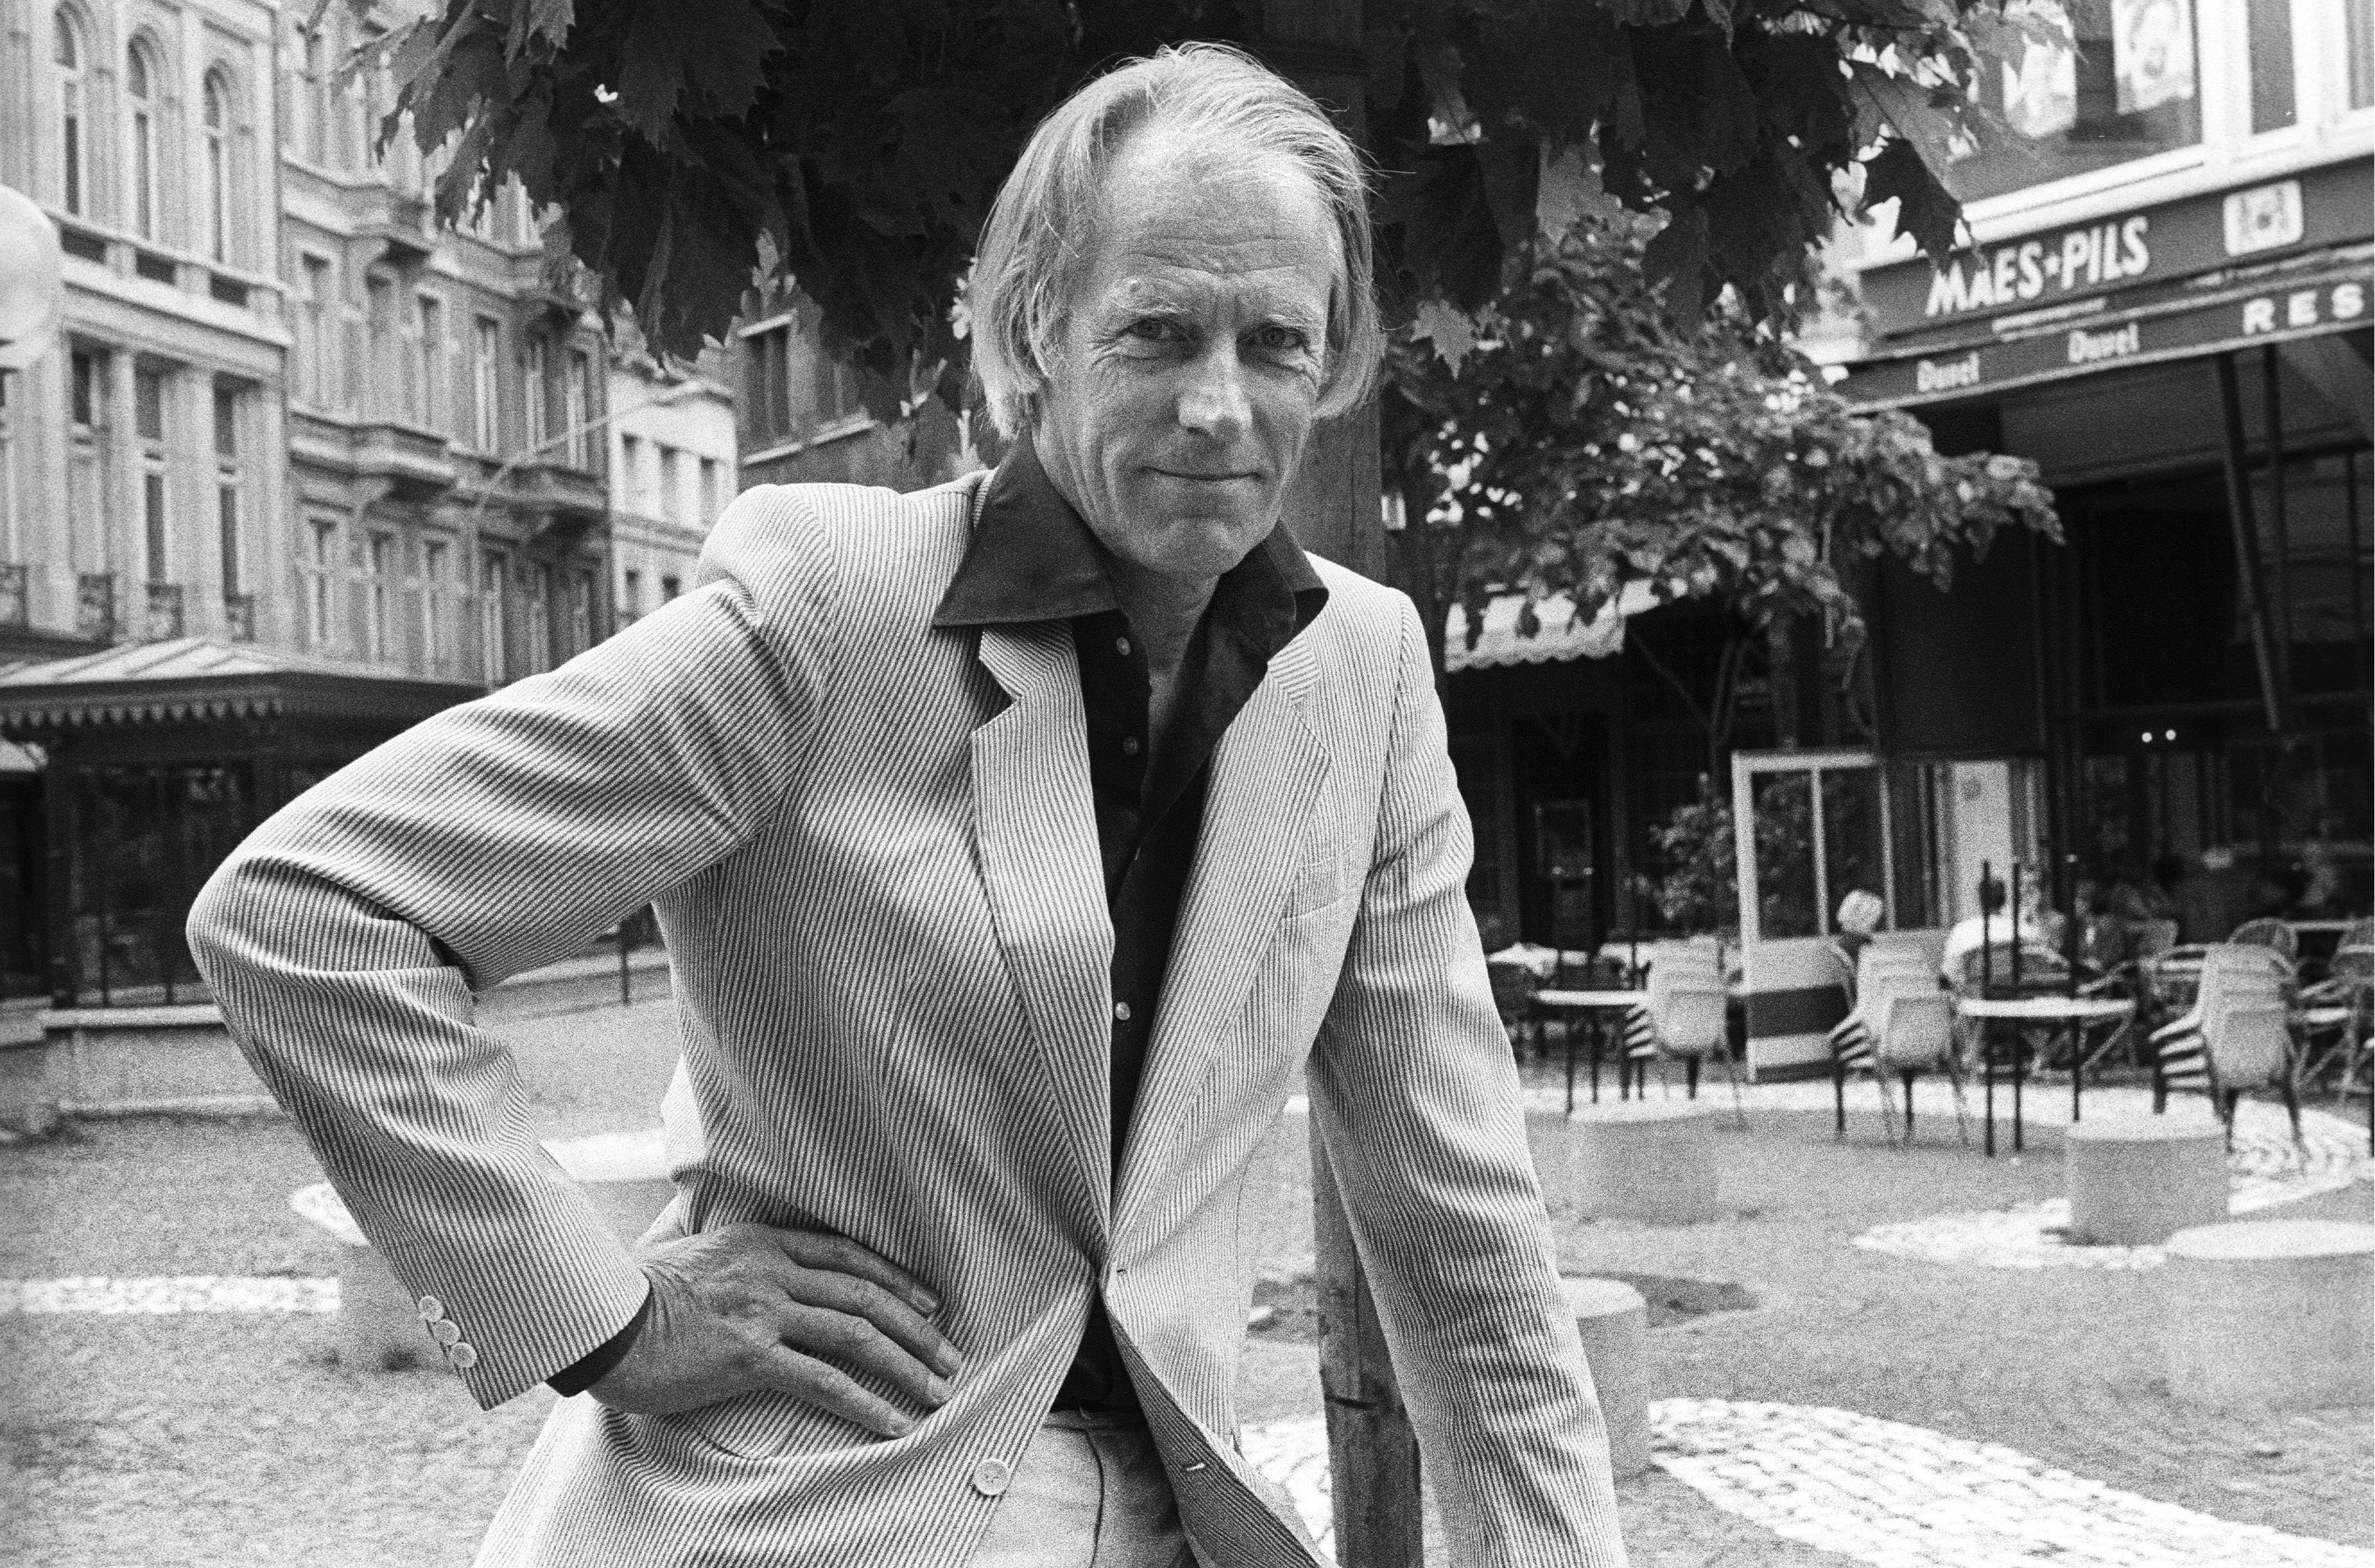 George Martin ( 3. Januar 1926 in Holloway, heute London Borough of Islington, England, gestorben am 8. März 2016)